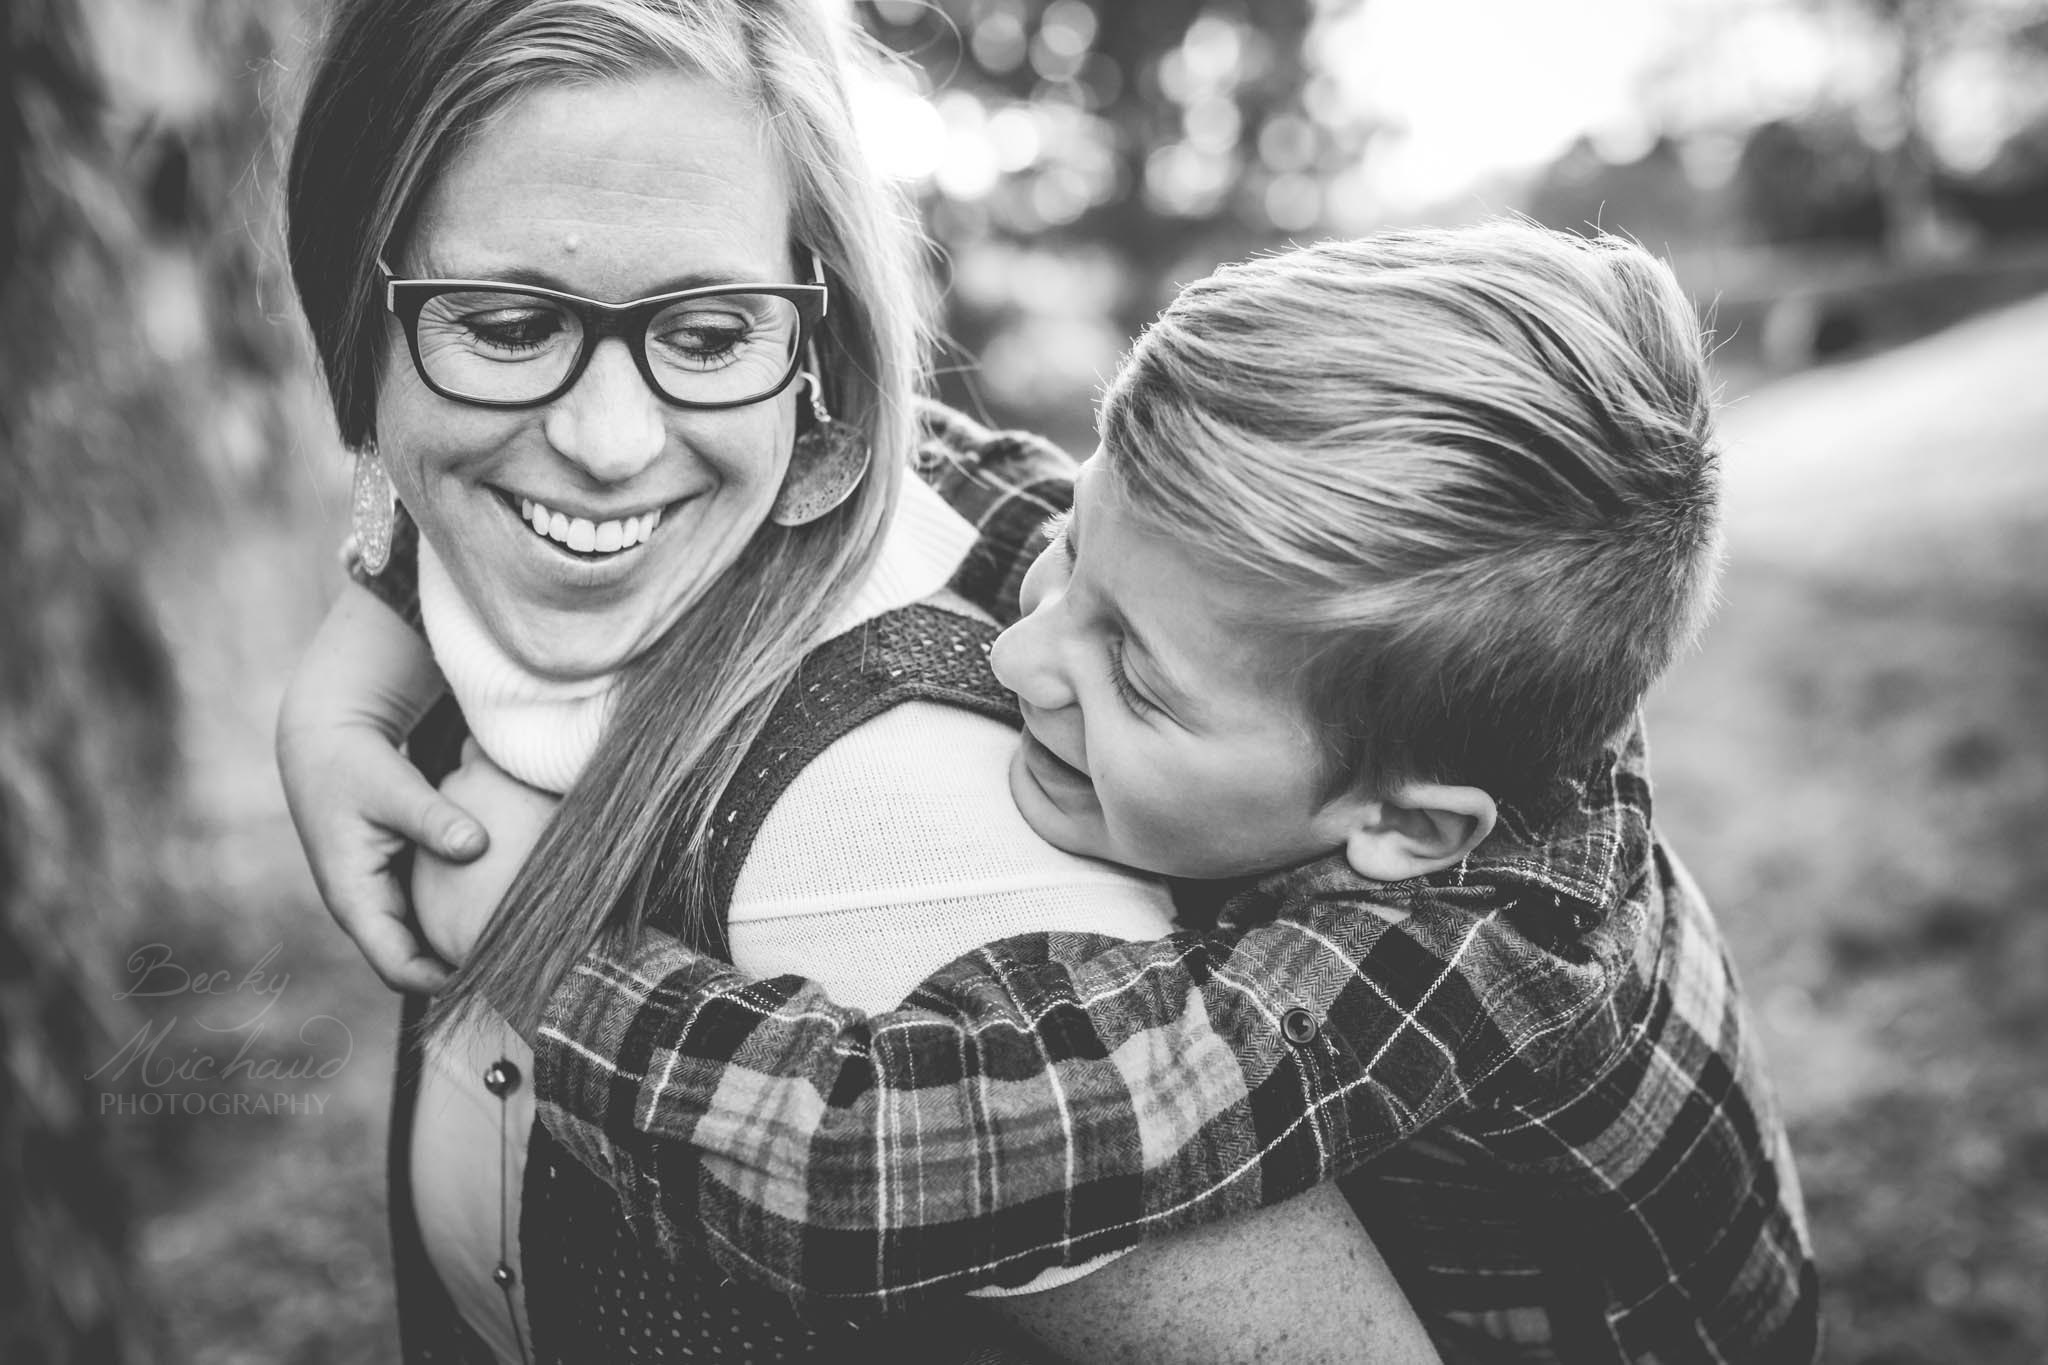 Mother and son playing with each other and having fun during a family photo session